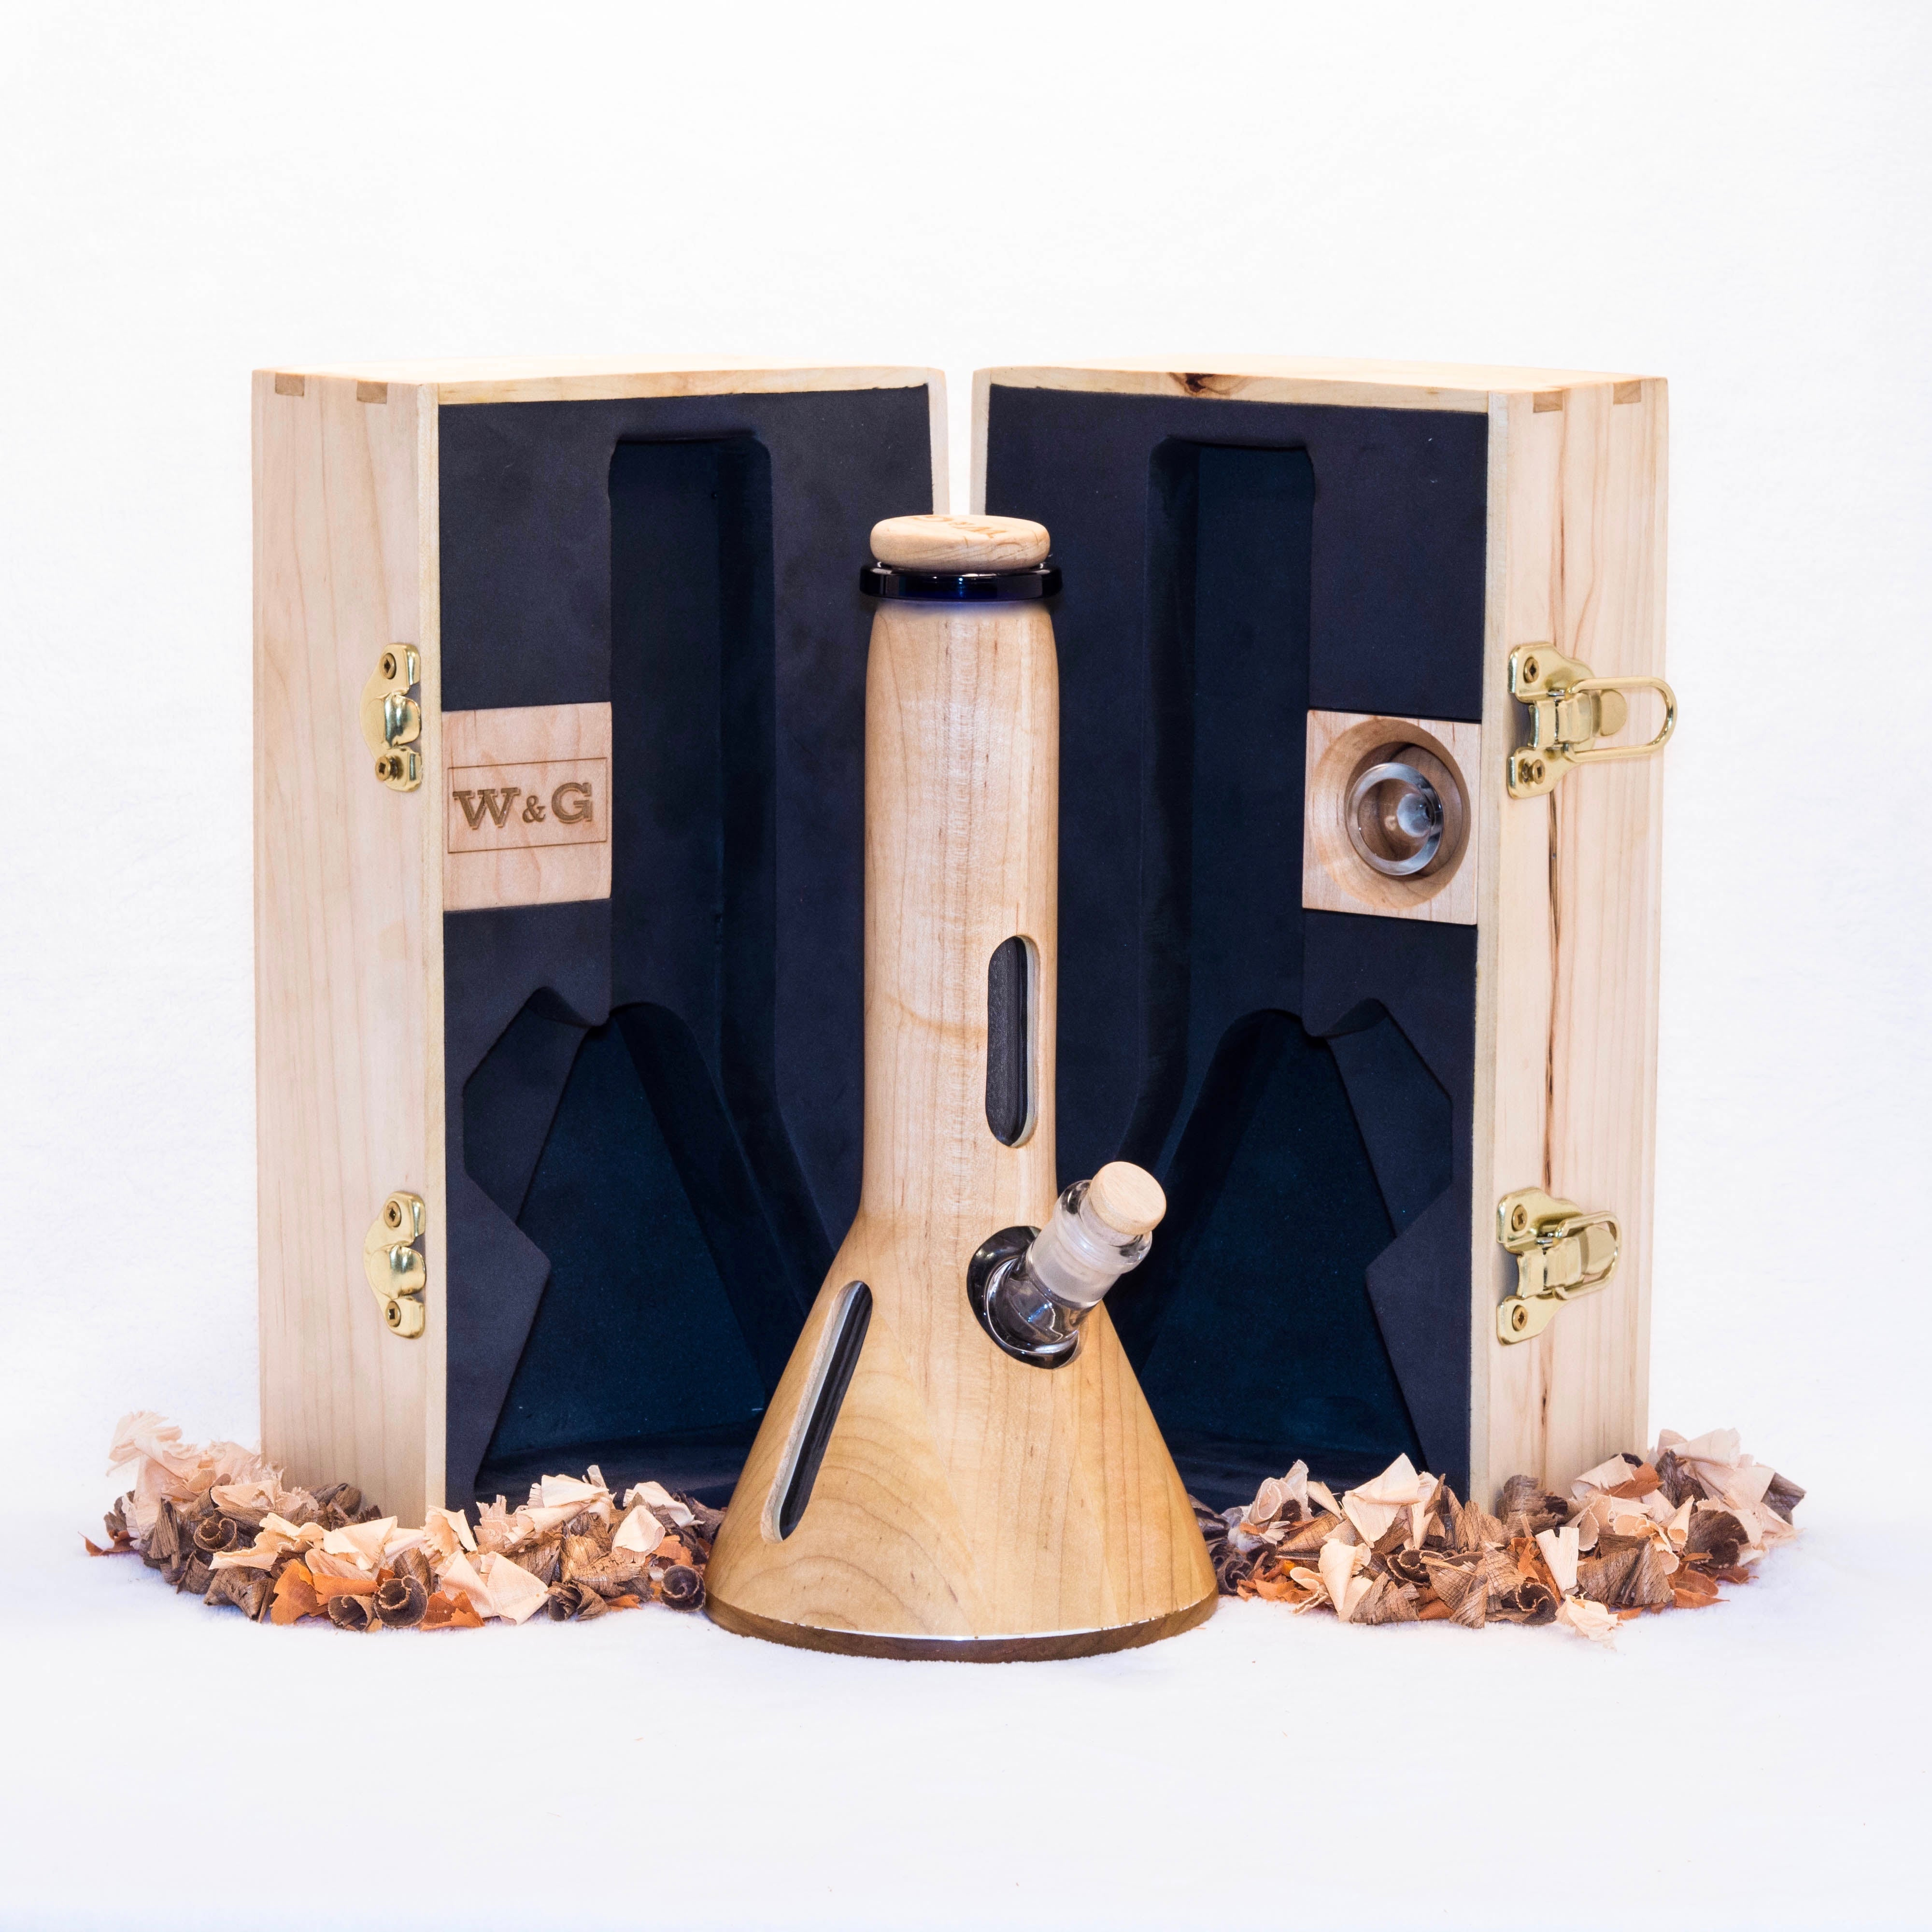 The Elegant W&G Maple Water-Pipe